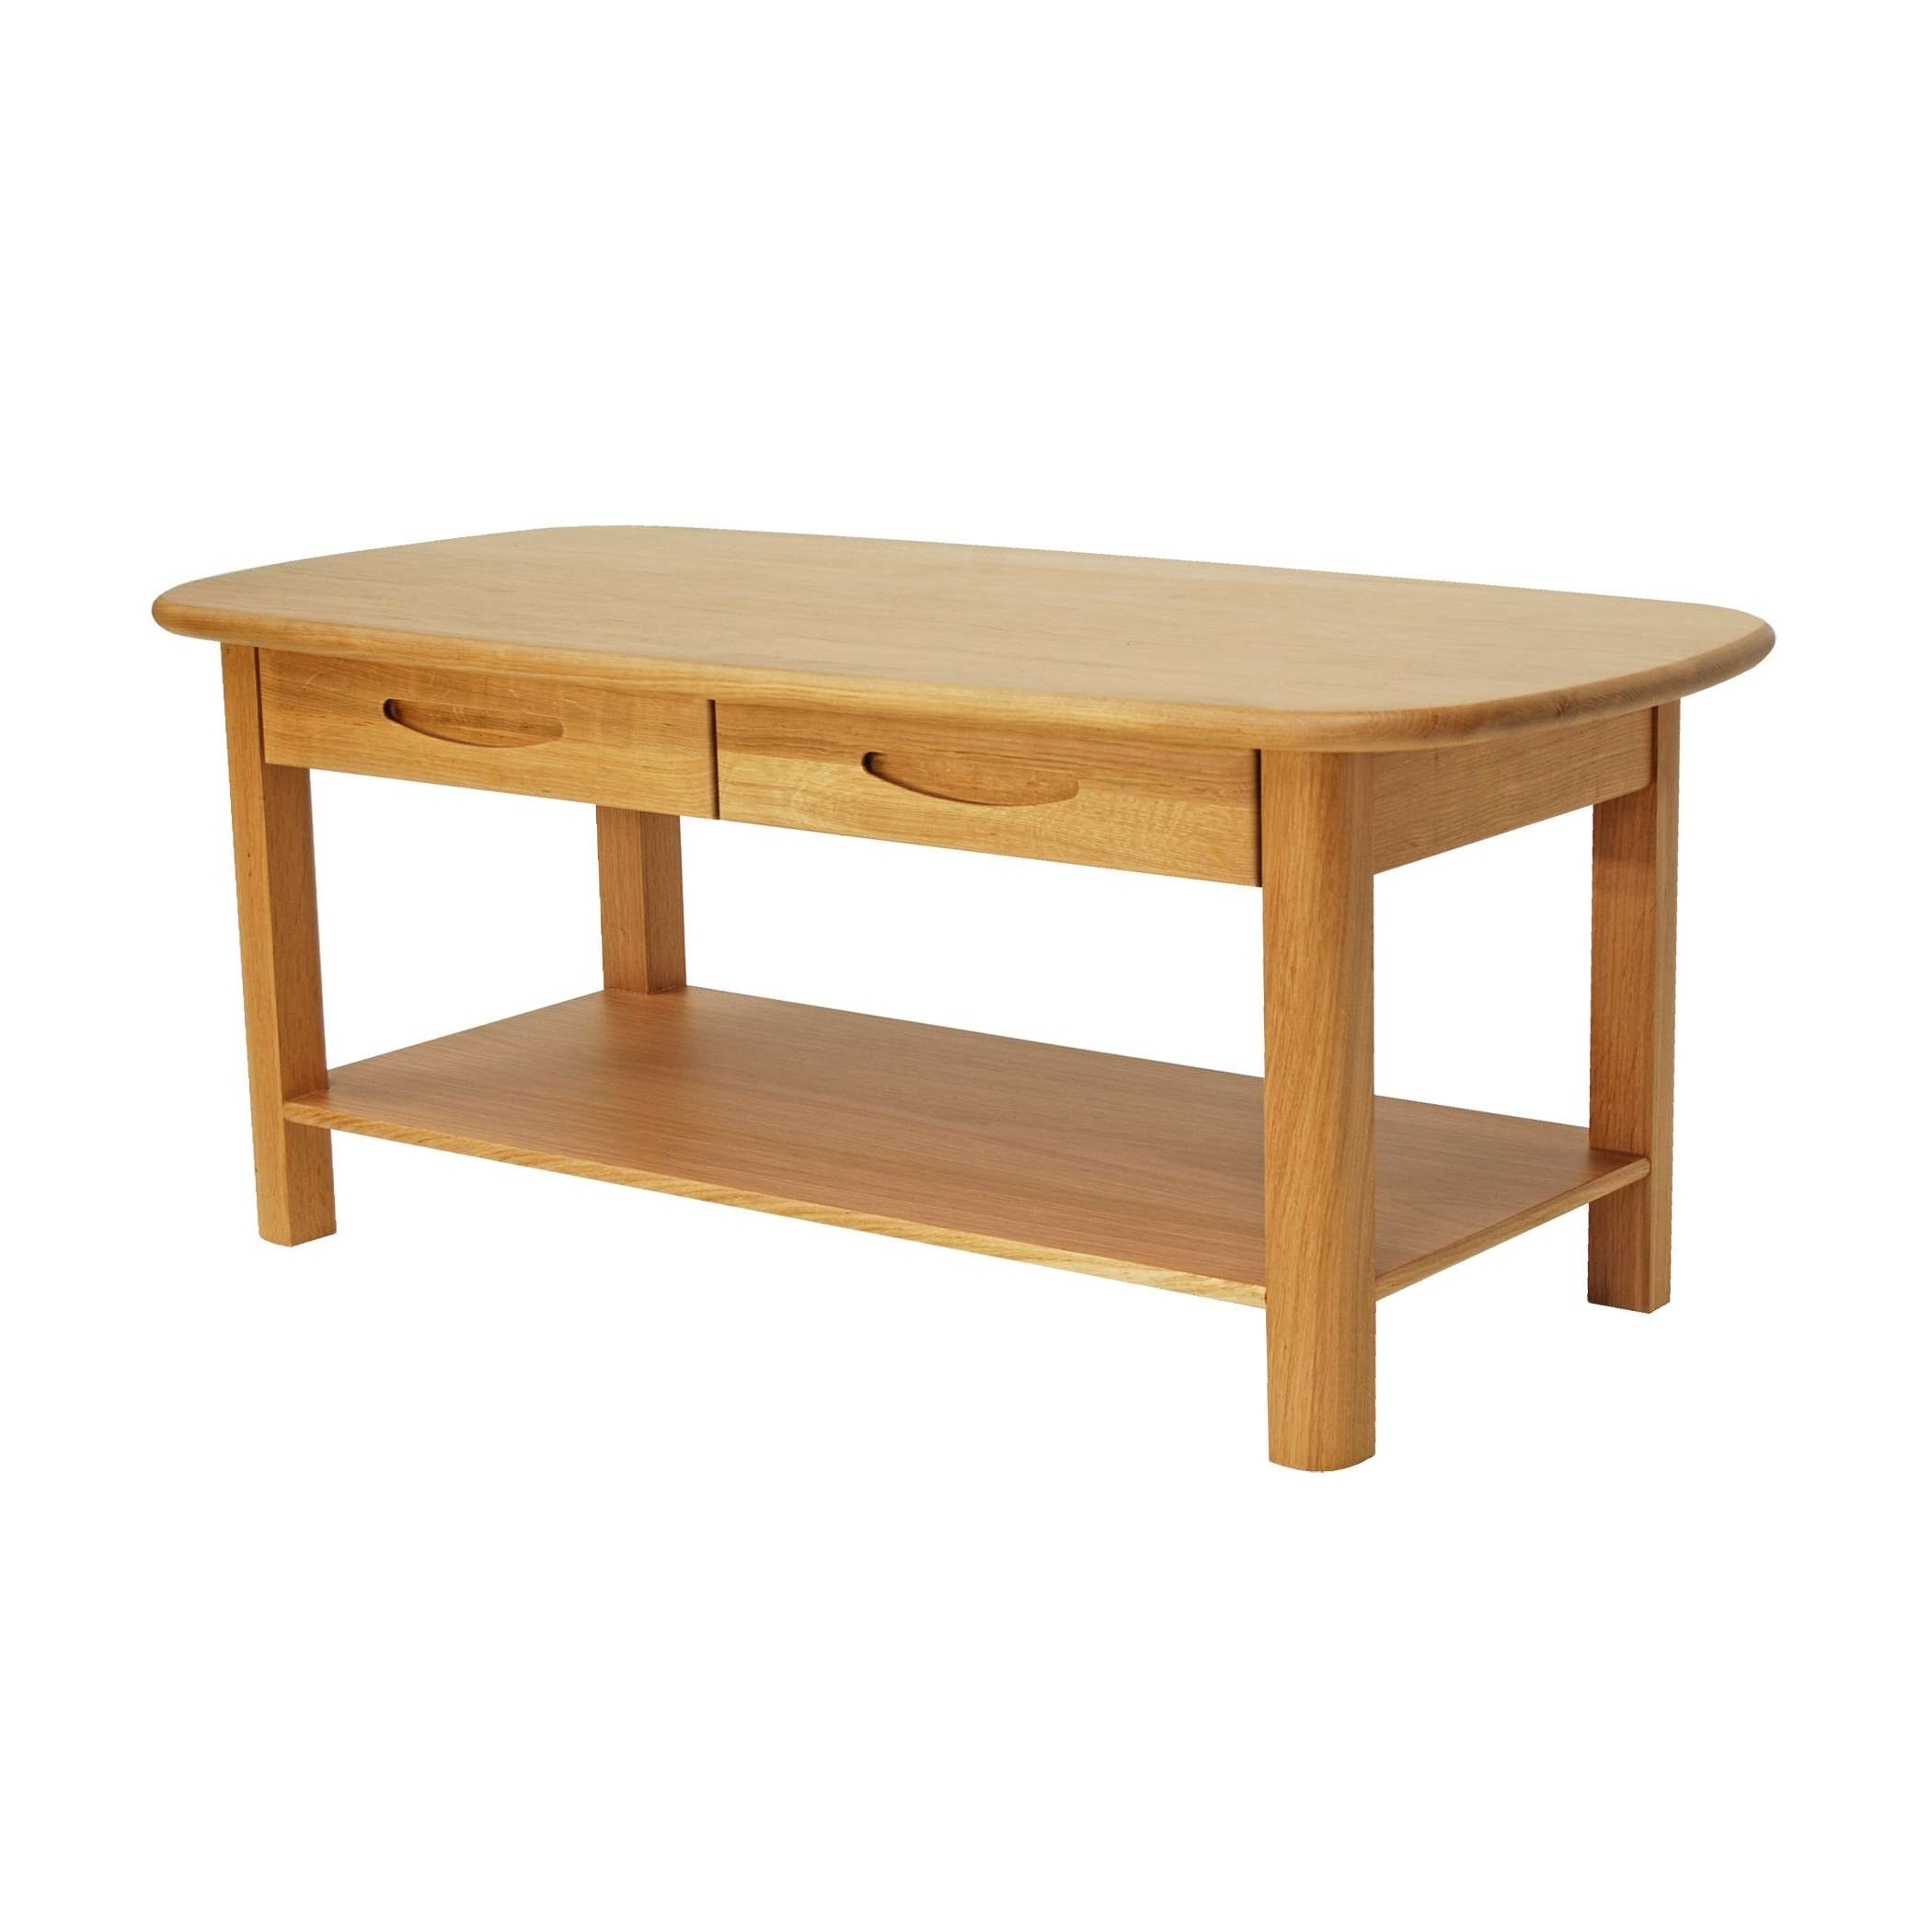 Most Recently Released Oak Coffee Tables With Shelf For Coffee Table : Wonderful Coffee And End Table Sets Wood Coffee (View 11 of 20)